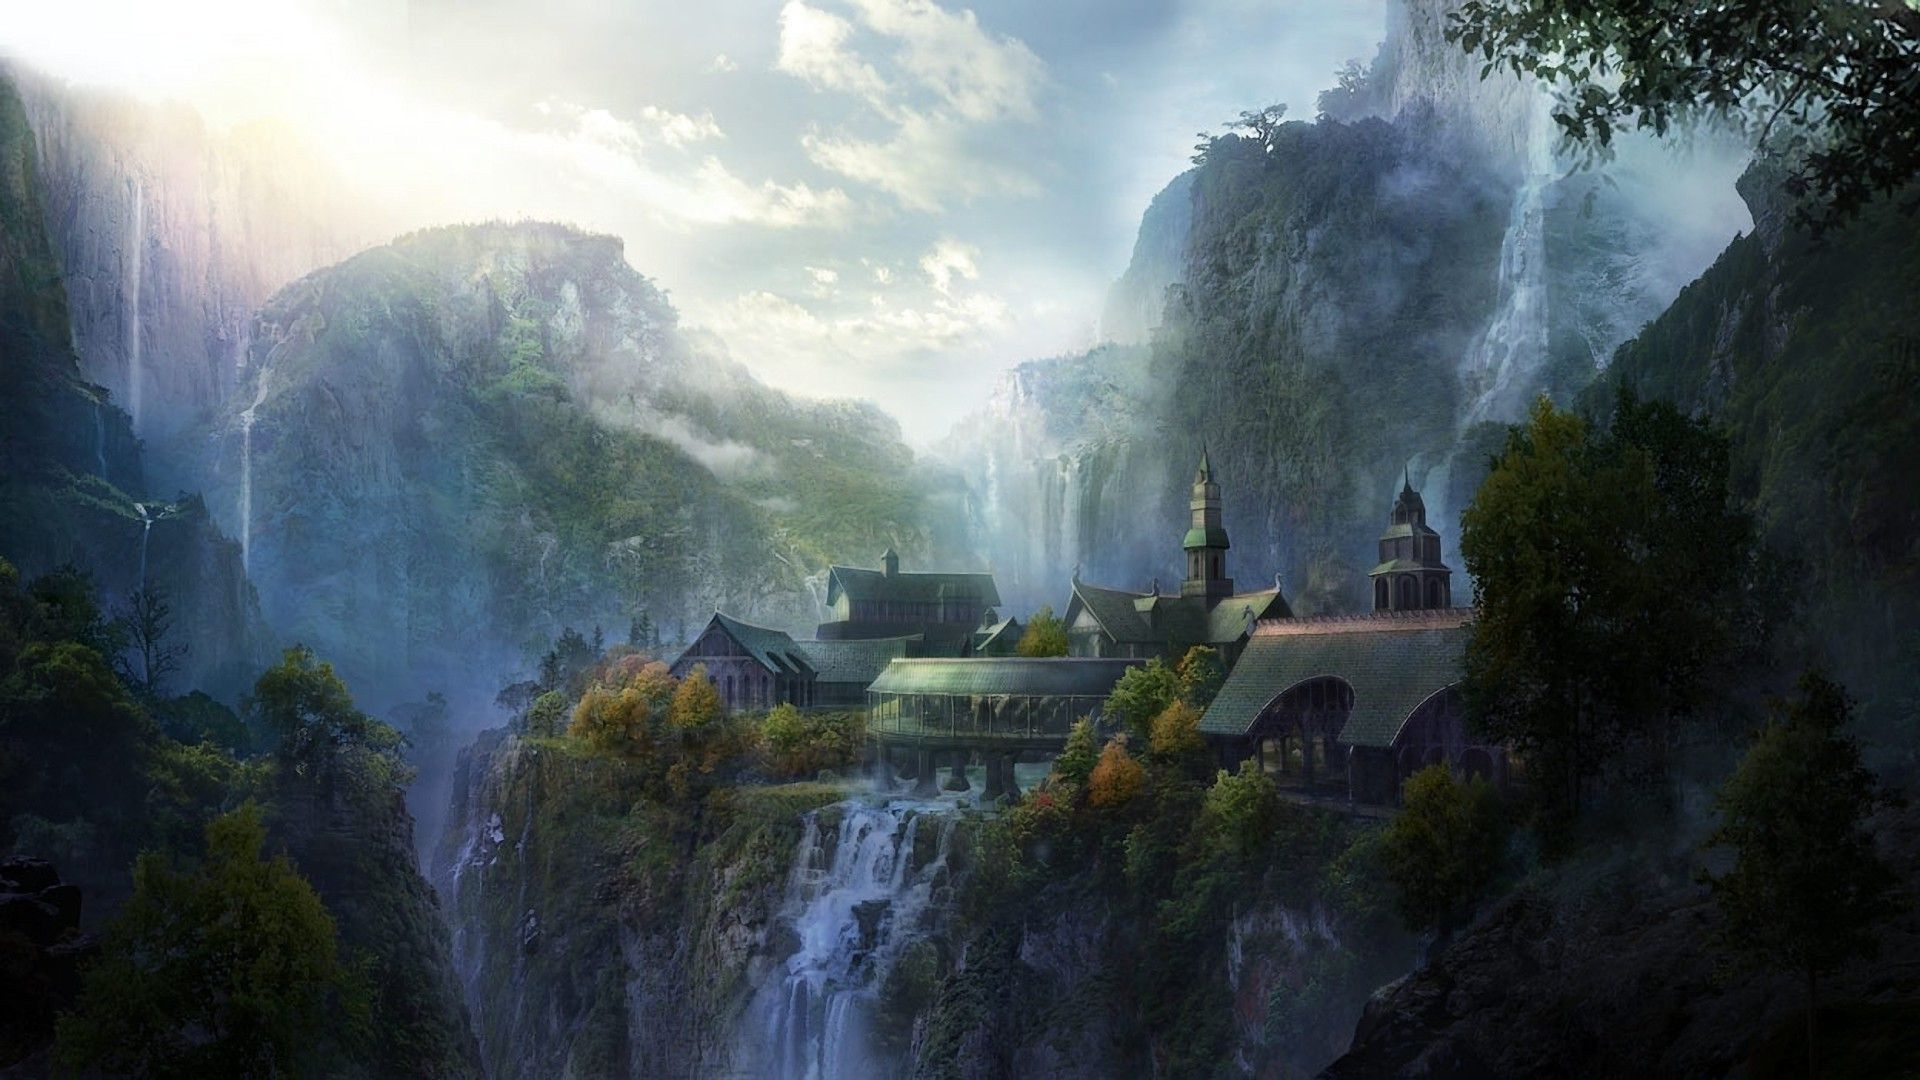 4k Lord Of The Rings Wallpapers Top Free 4k Lord Of The Rings